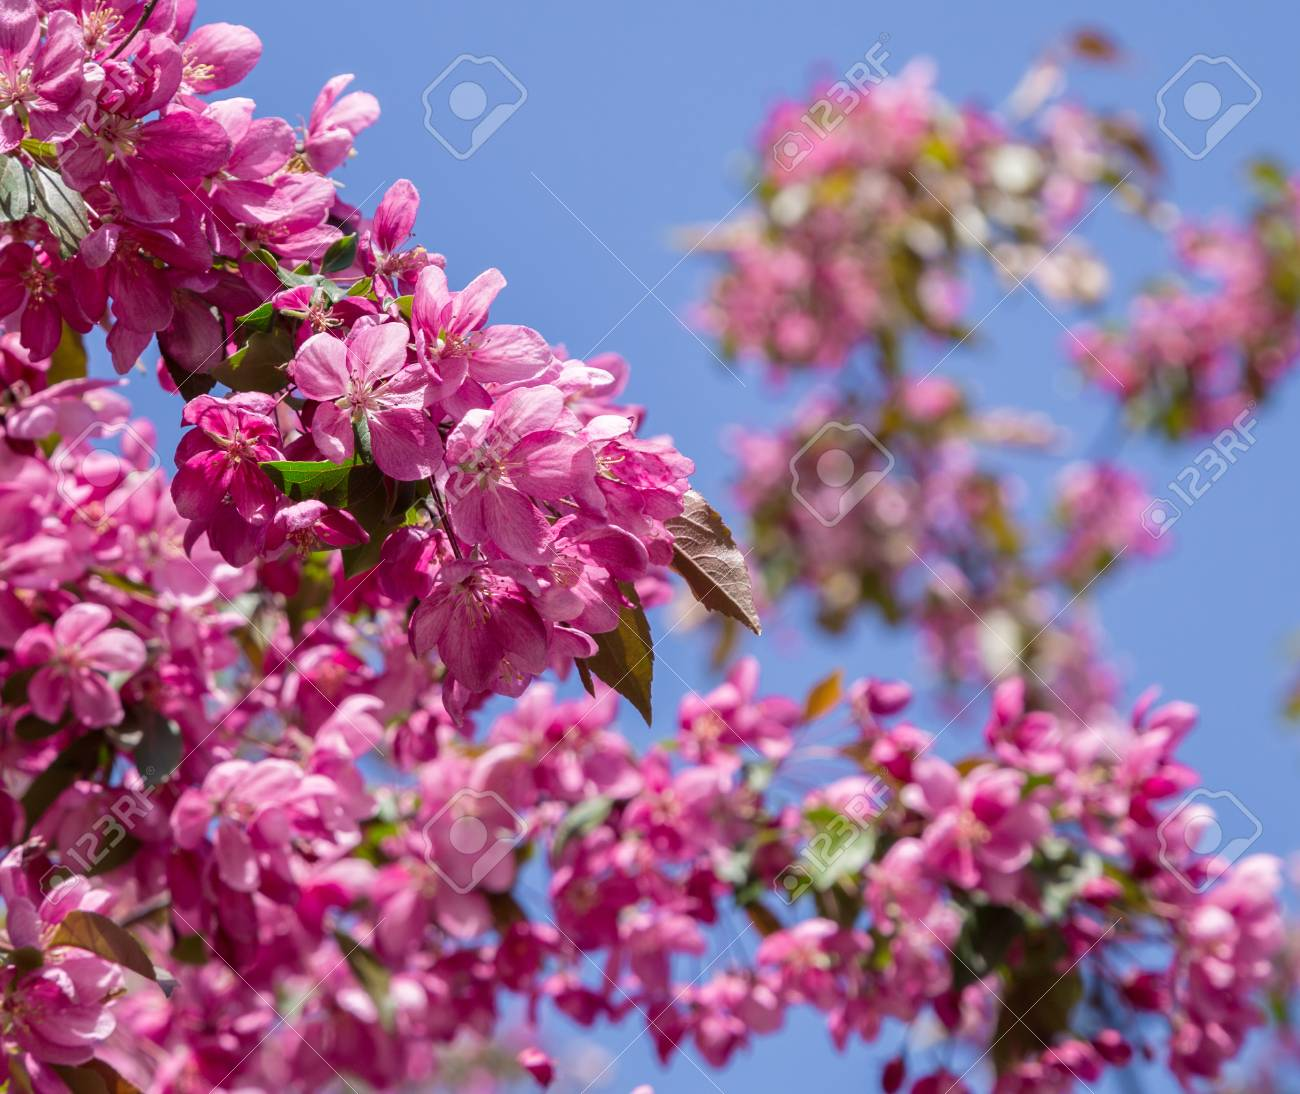 Pink Flowers On The Branches Of Fruit Trees Apple Tree In Blossom